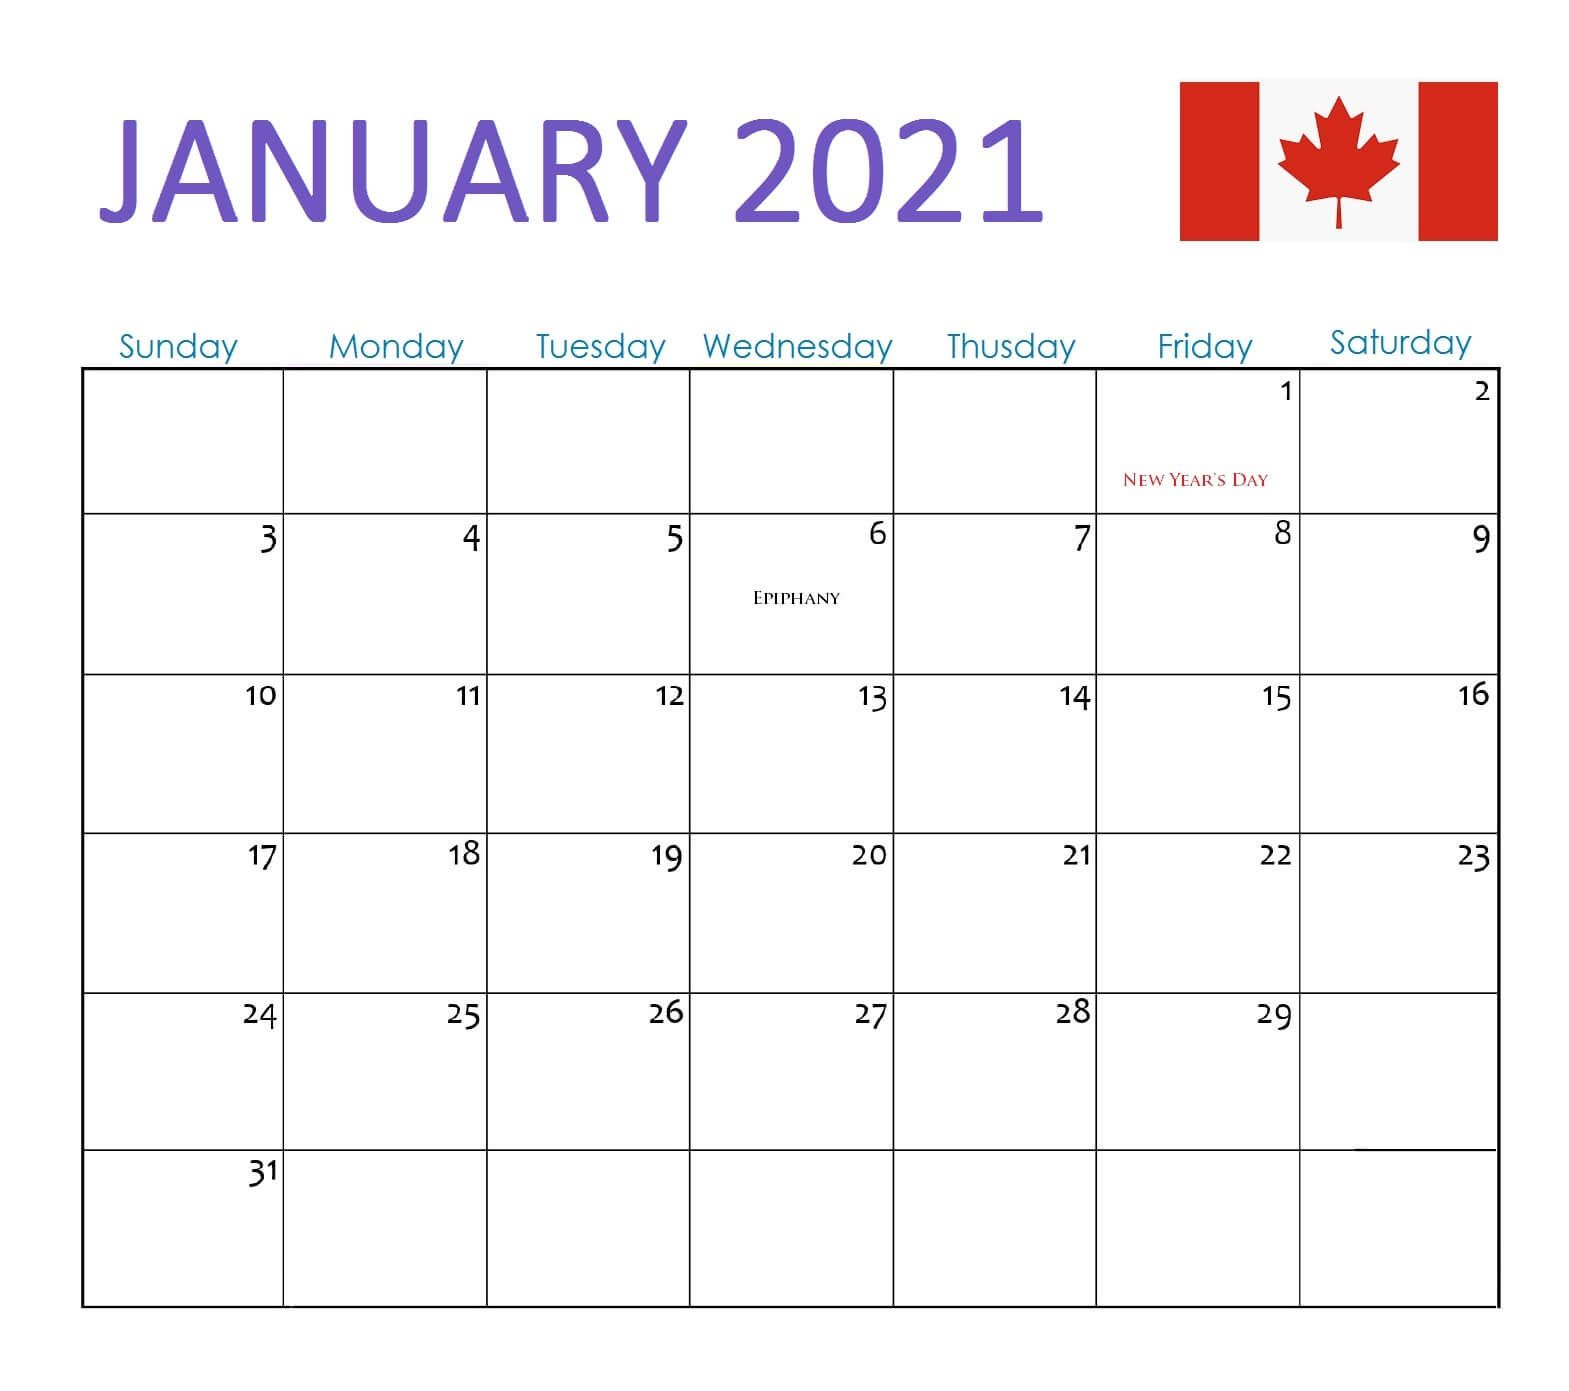 Download Calendar January 2021 : January 2021 Calligraphy ...